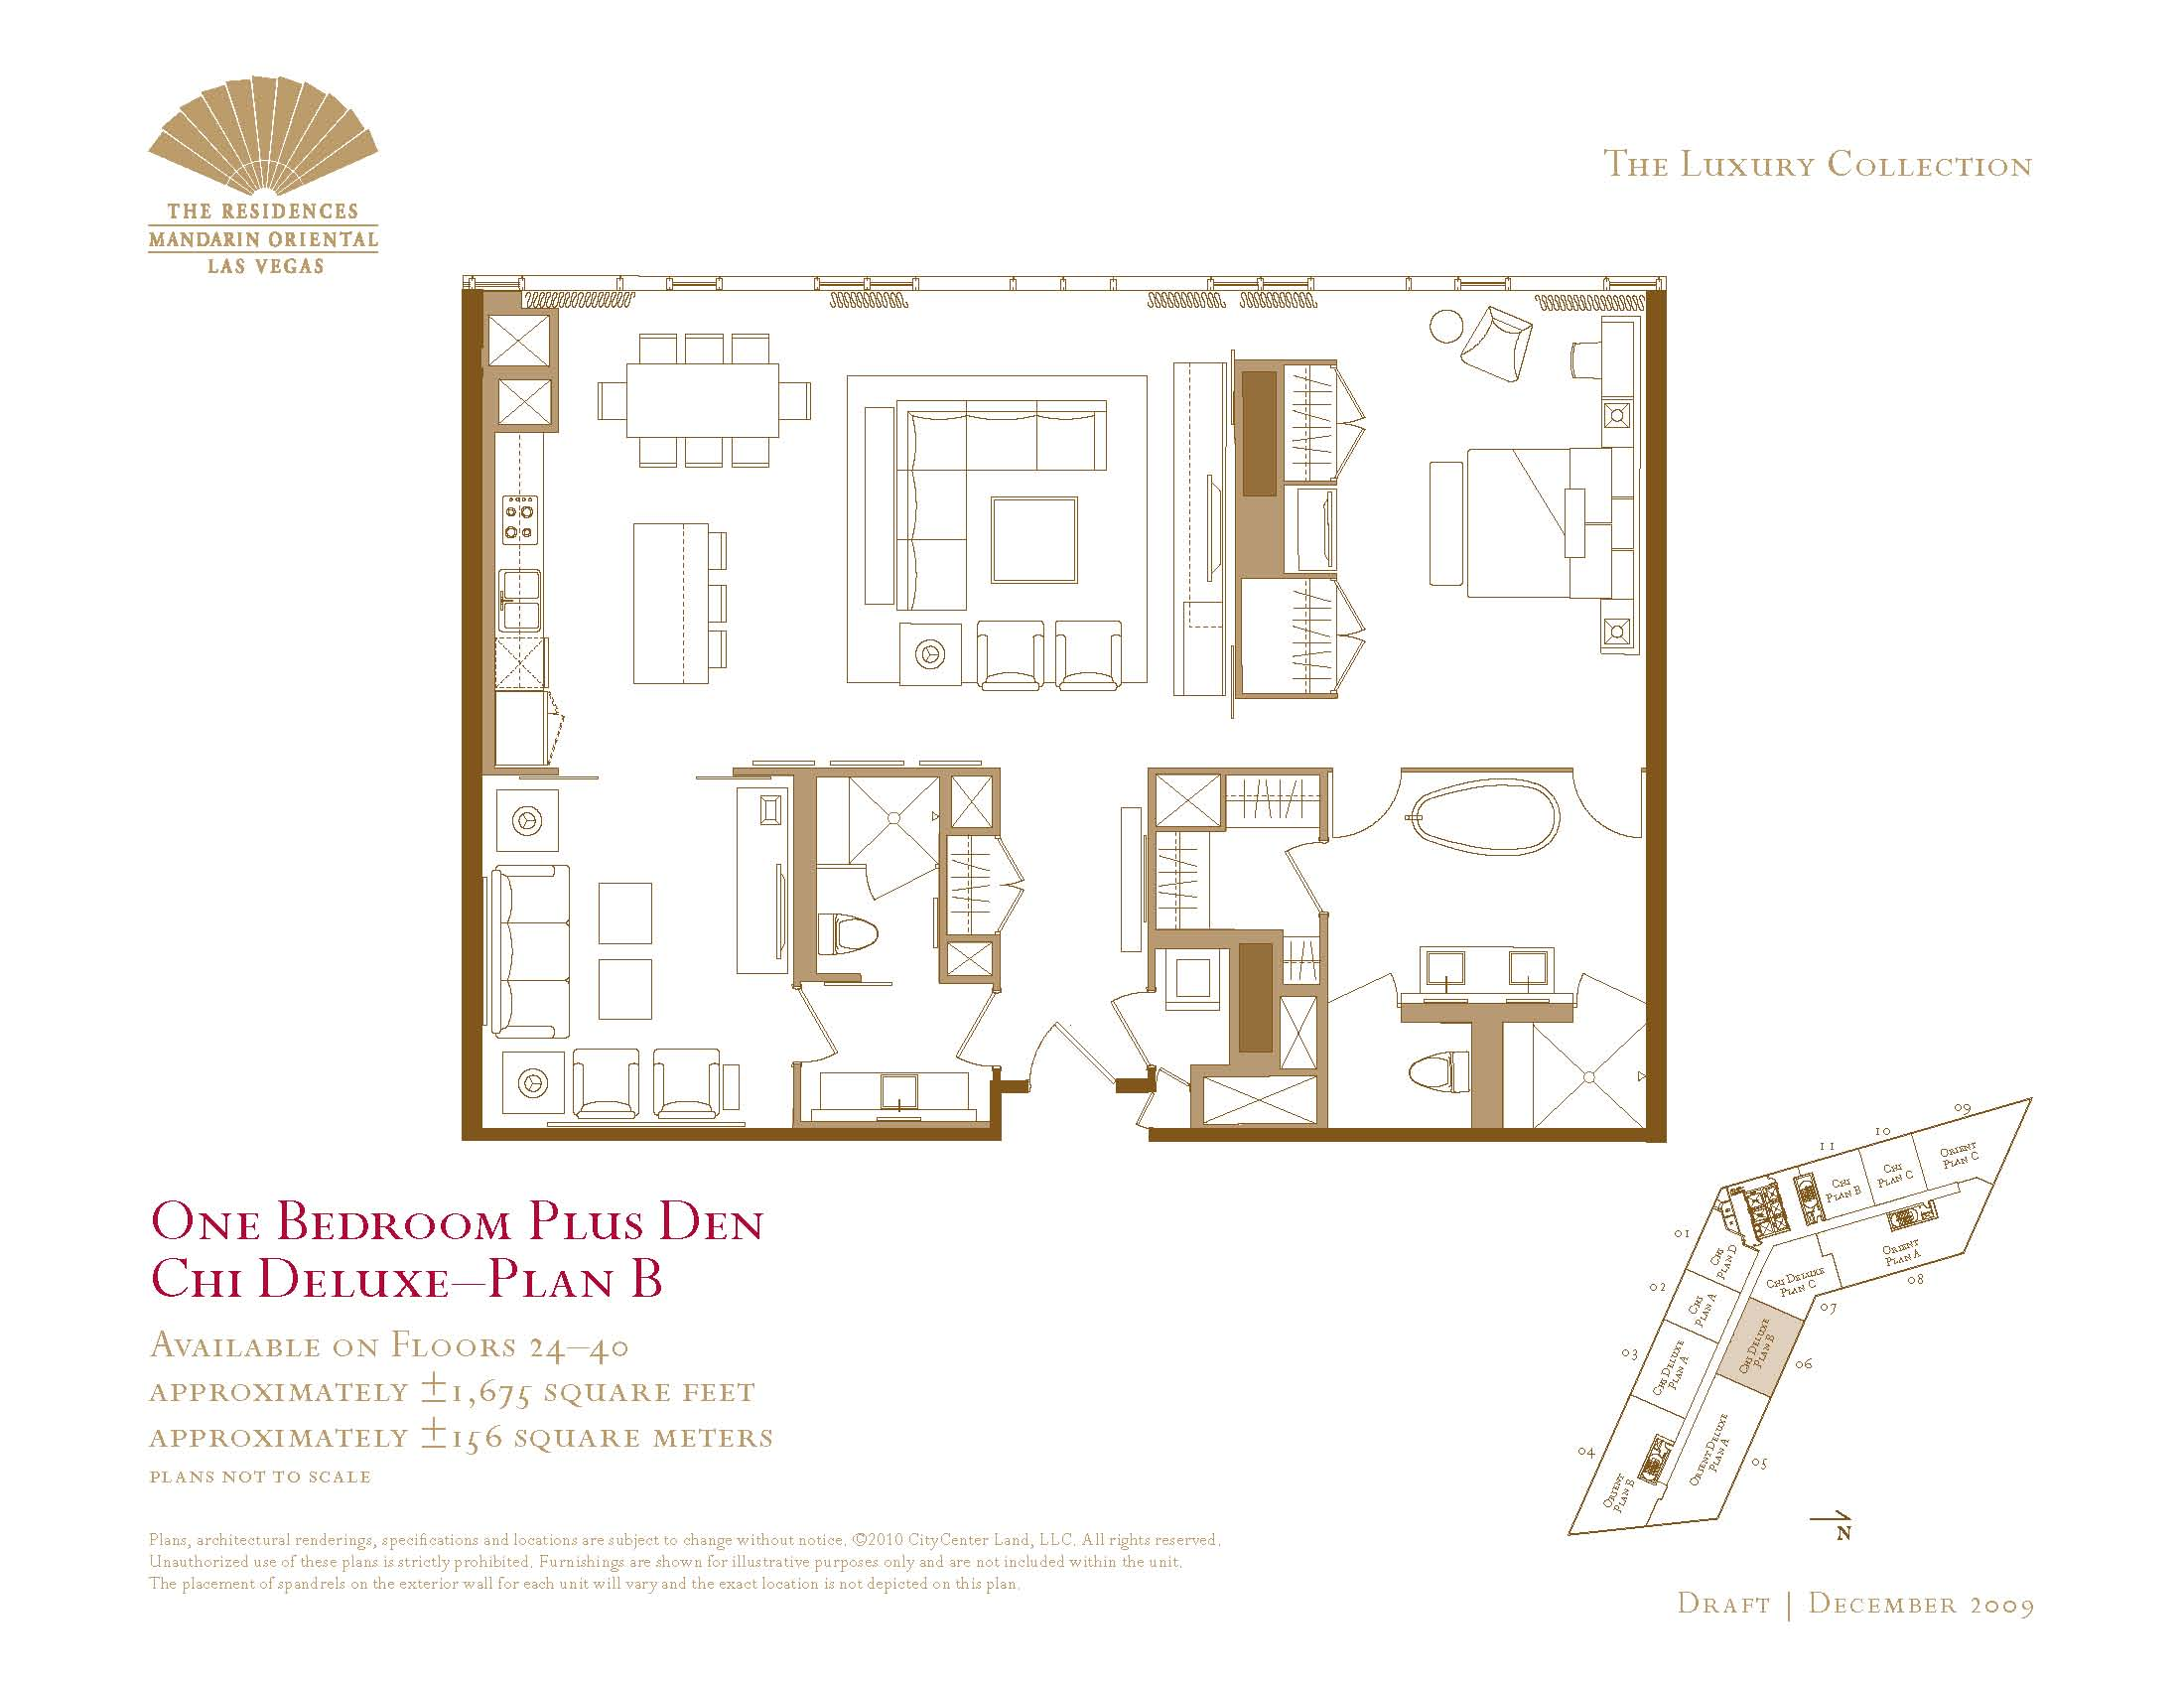 One Bedroom Plus Den Floor Plans The Mandarin Oriental Las Vegas - Las vegas floor plans